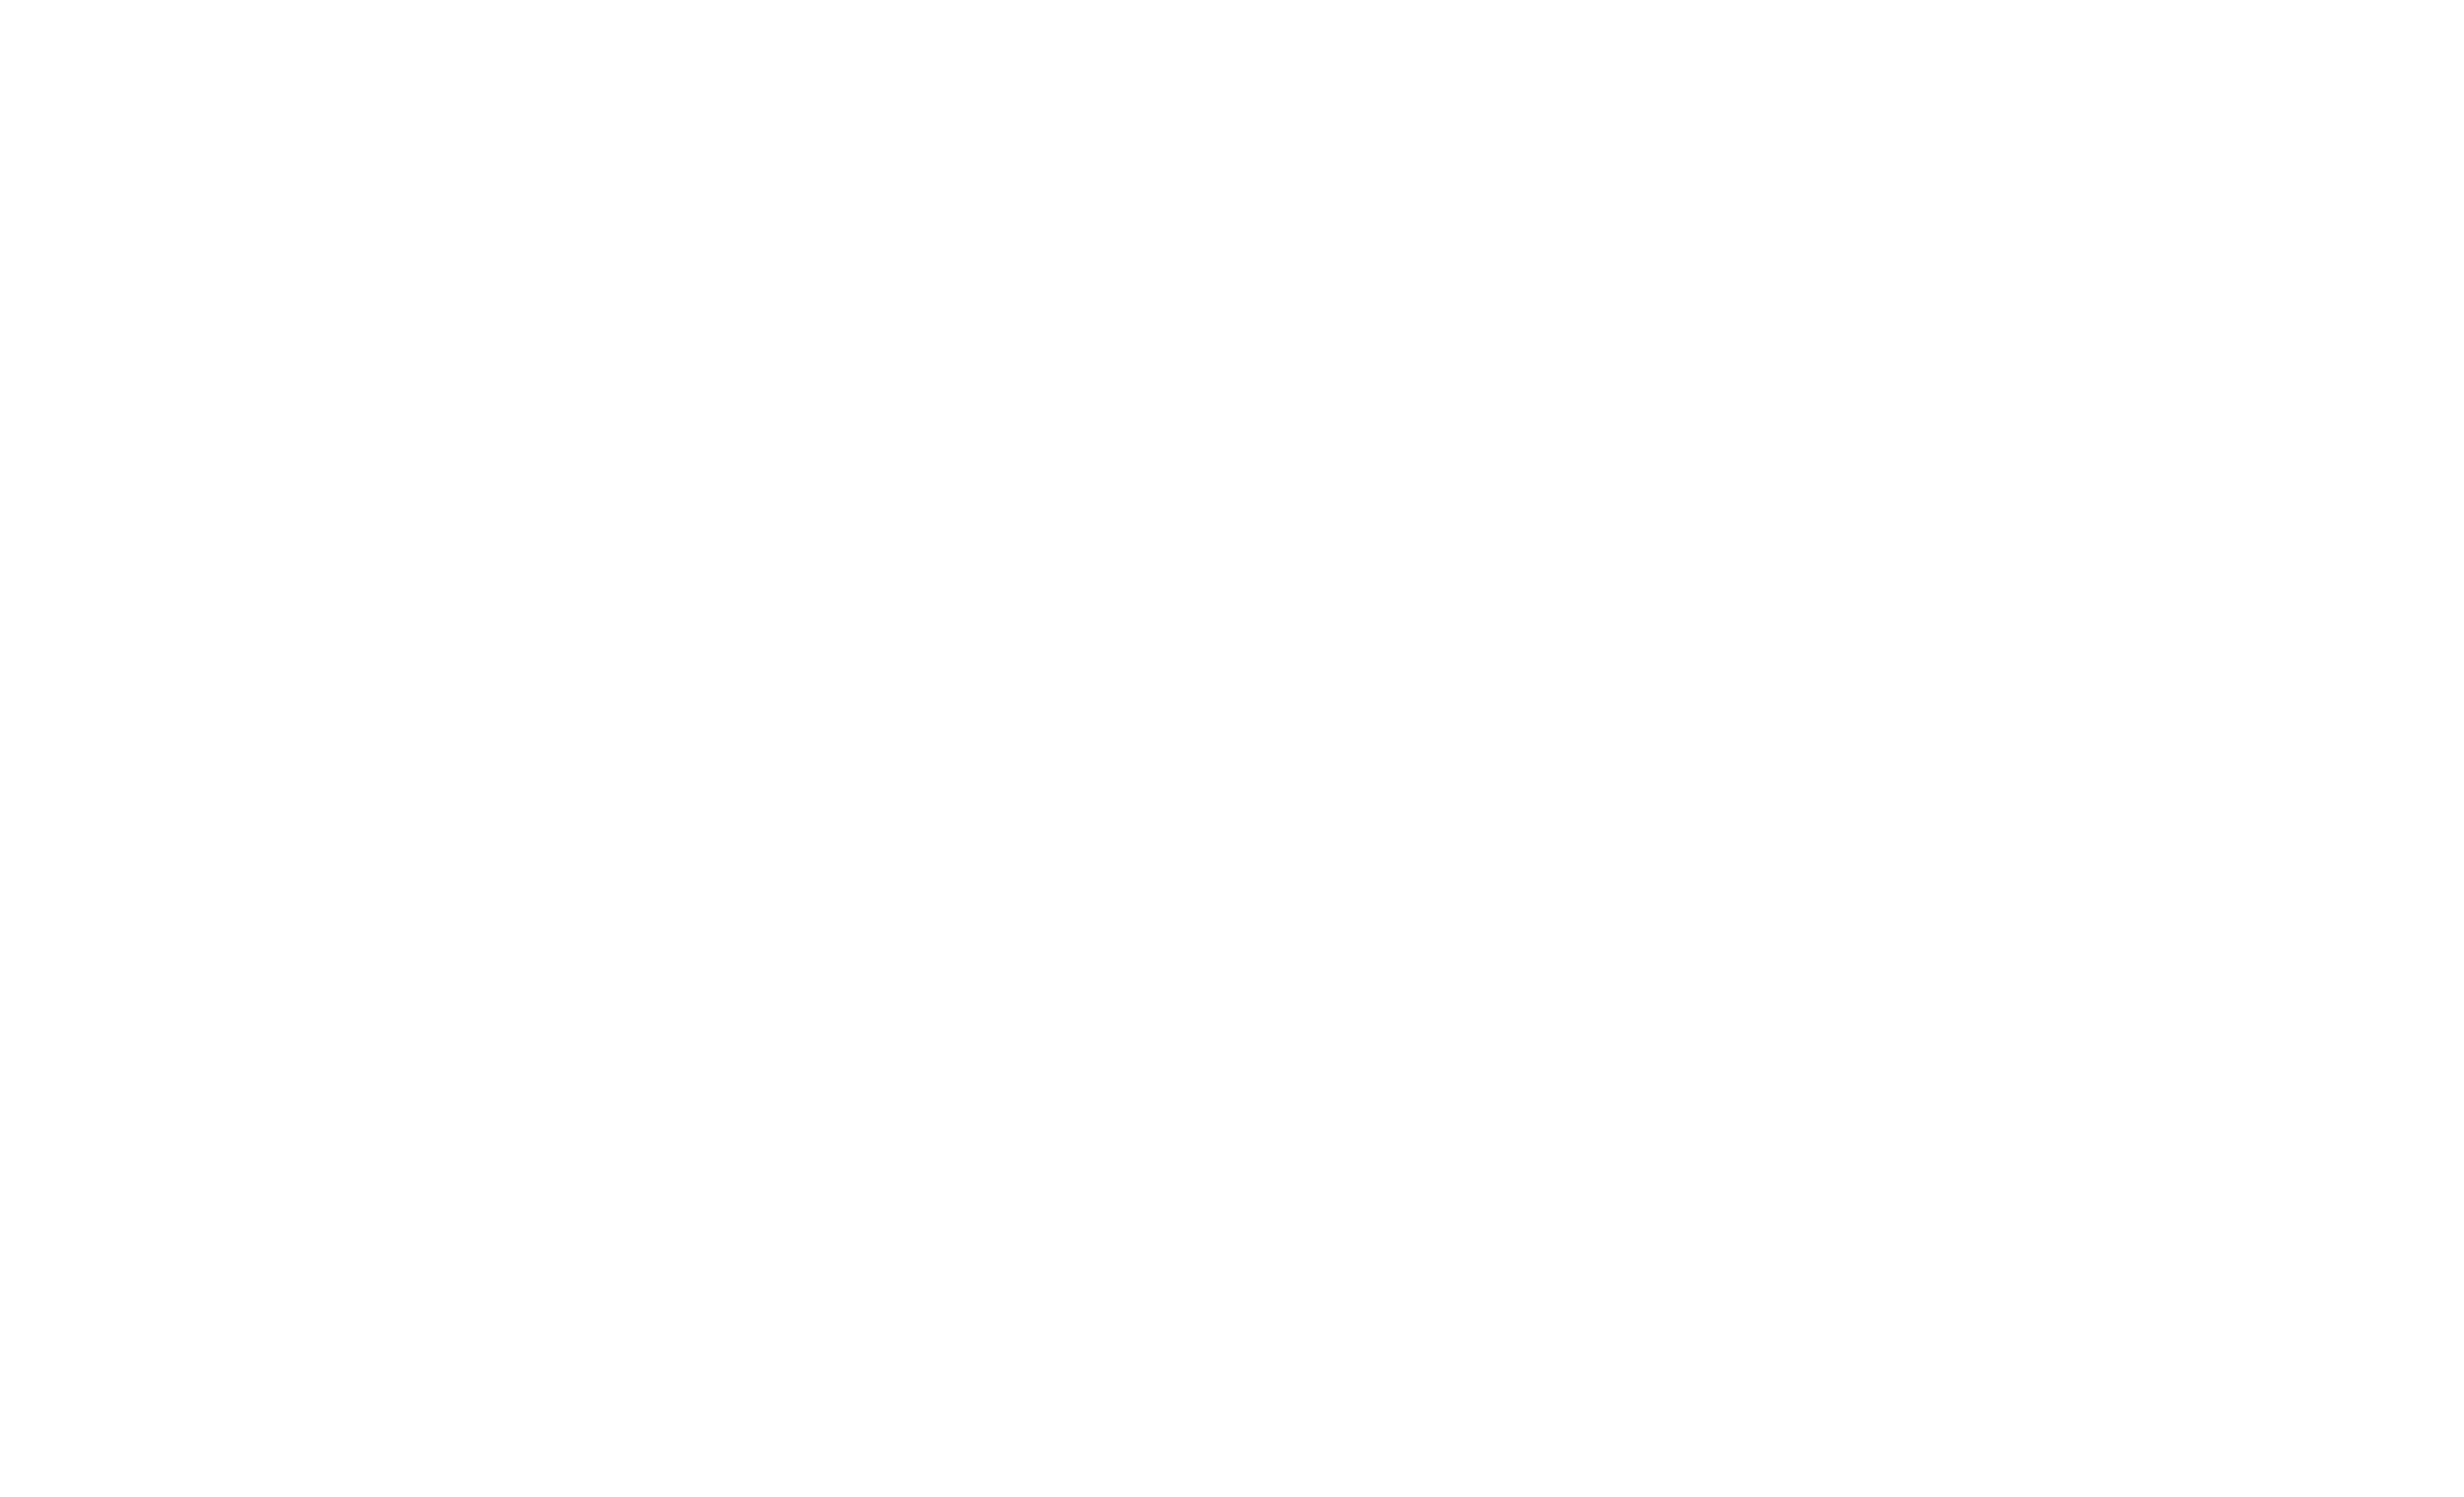 Qwesi Visuals